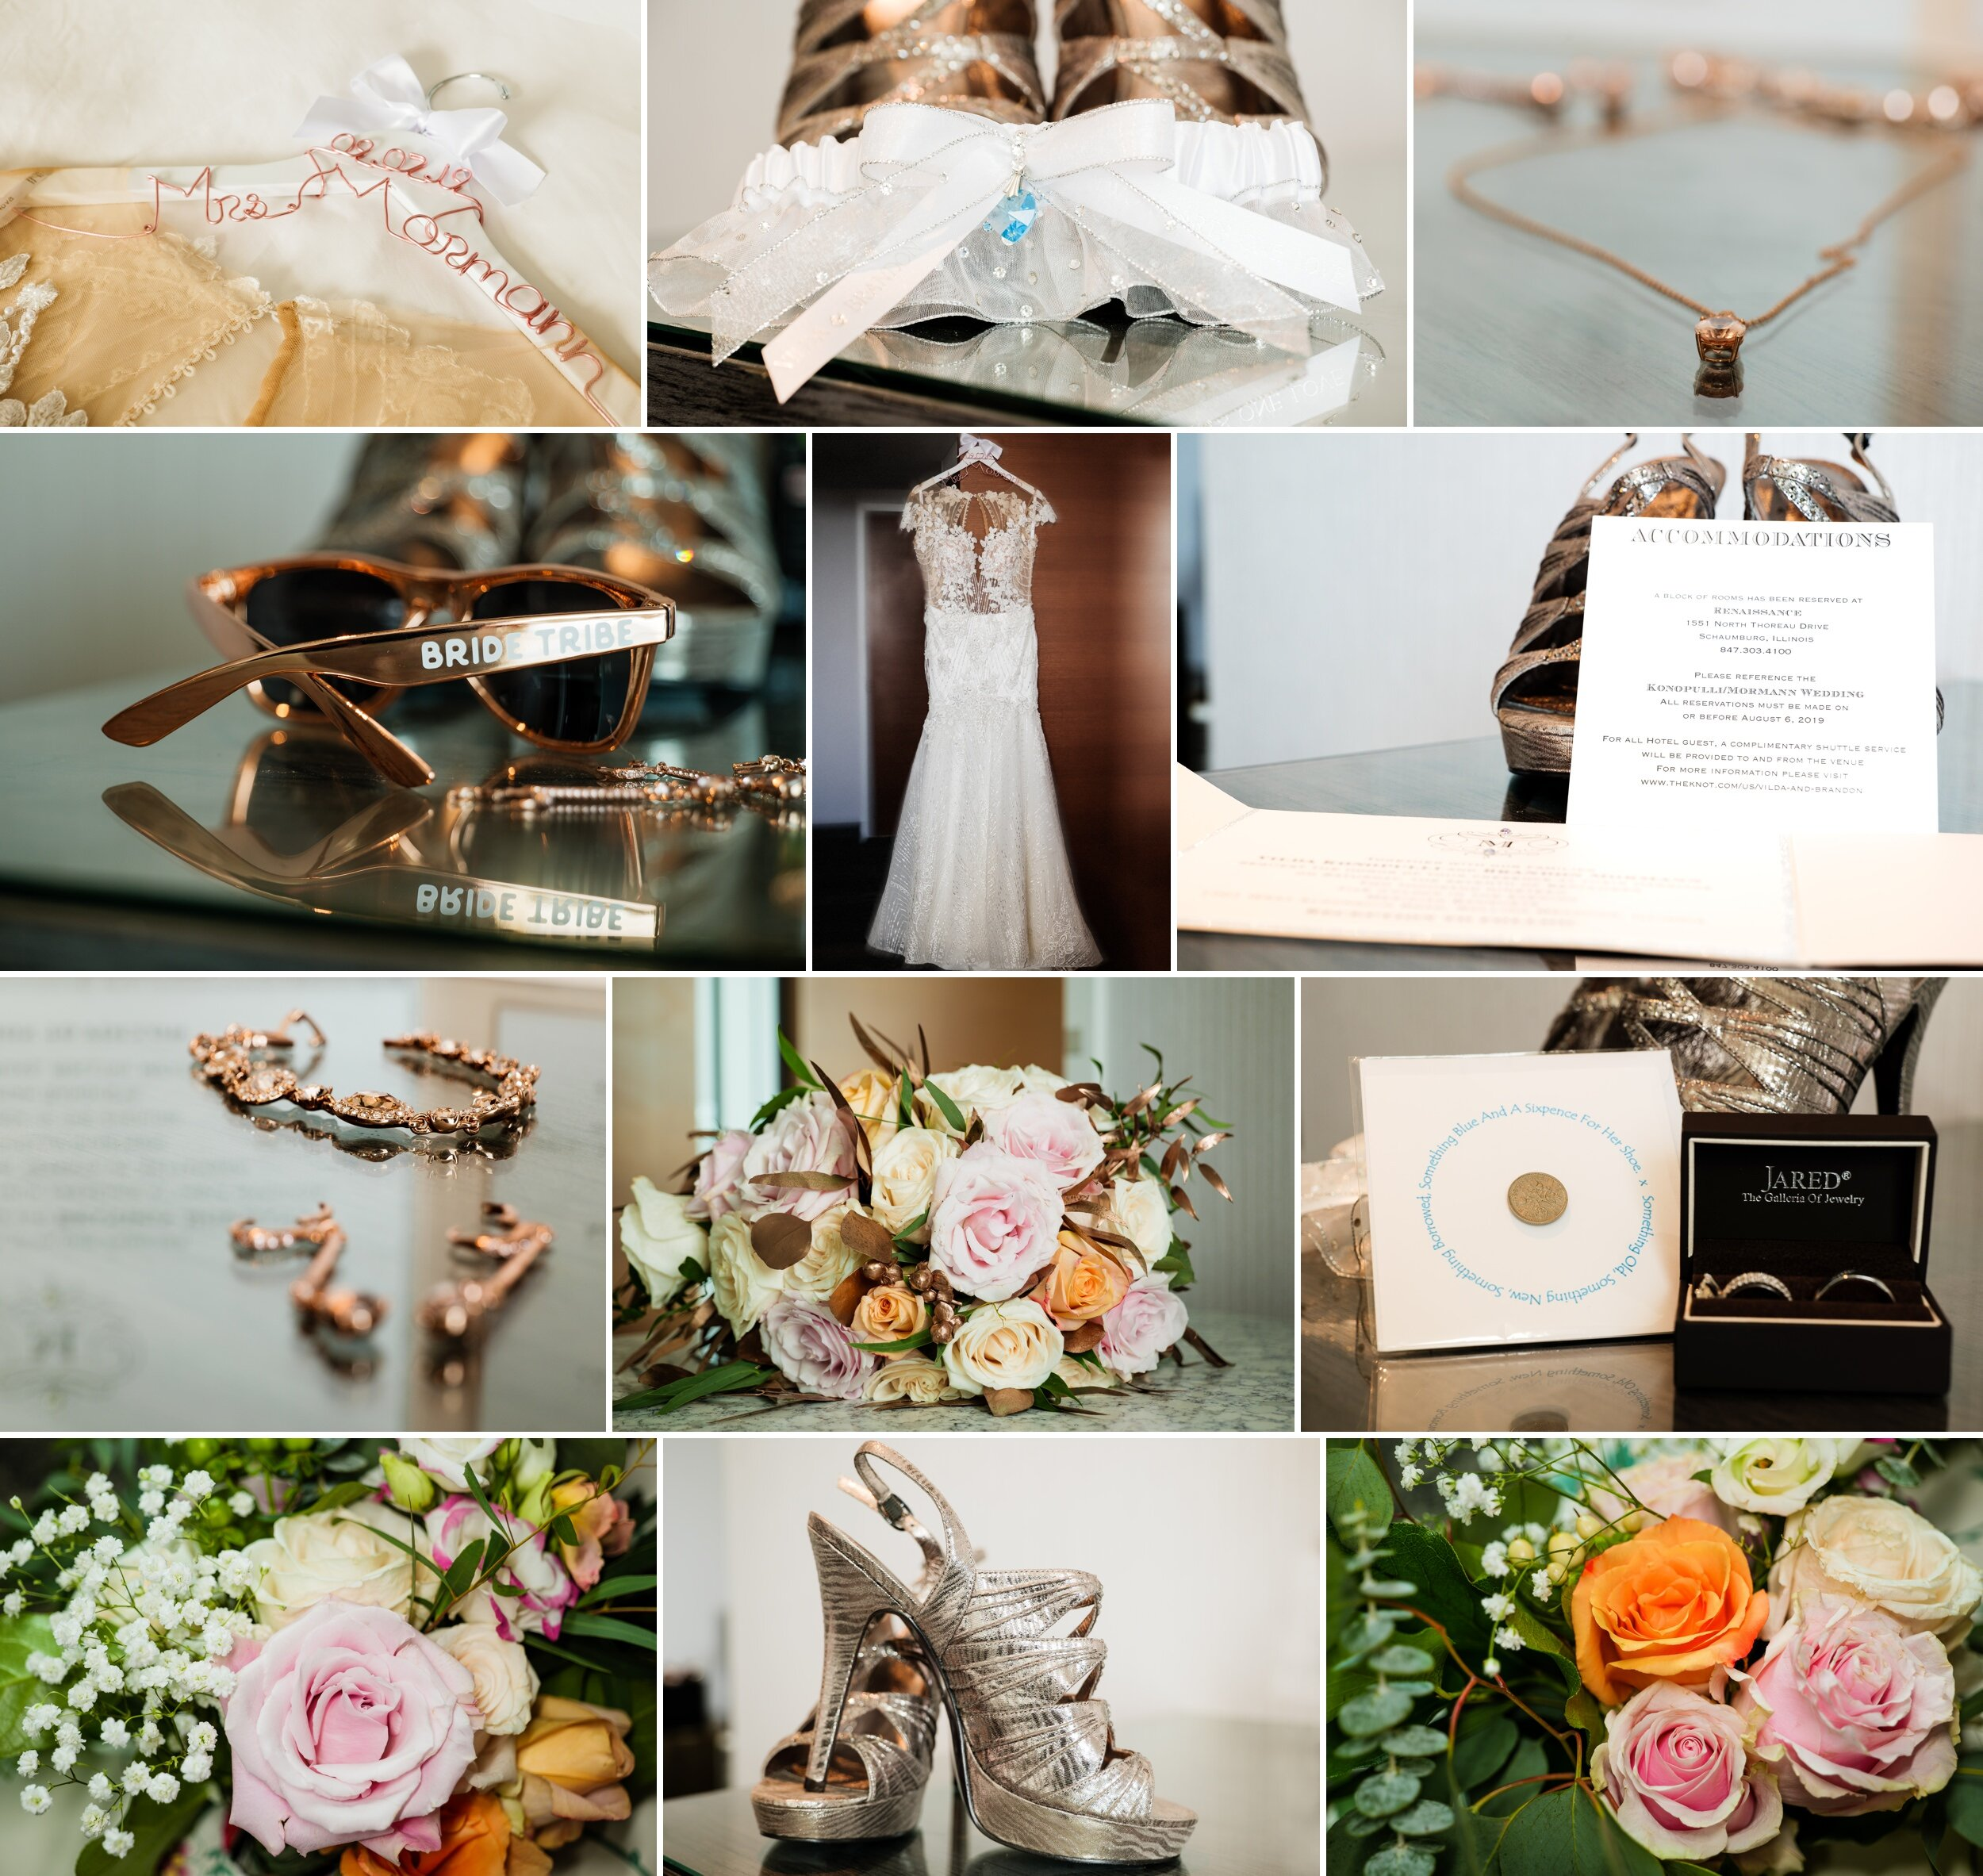 Bridal details at Renaissance Hotel on wedding day.